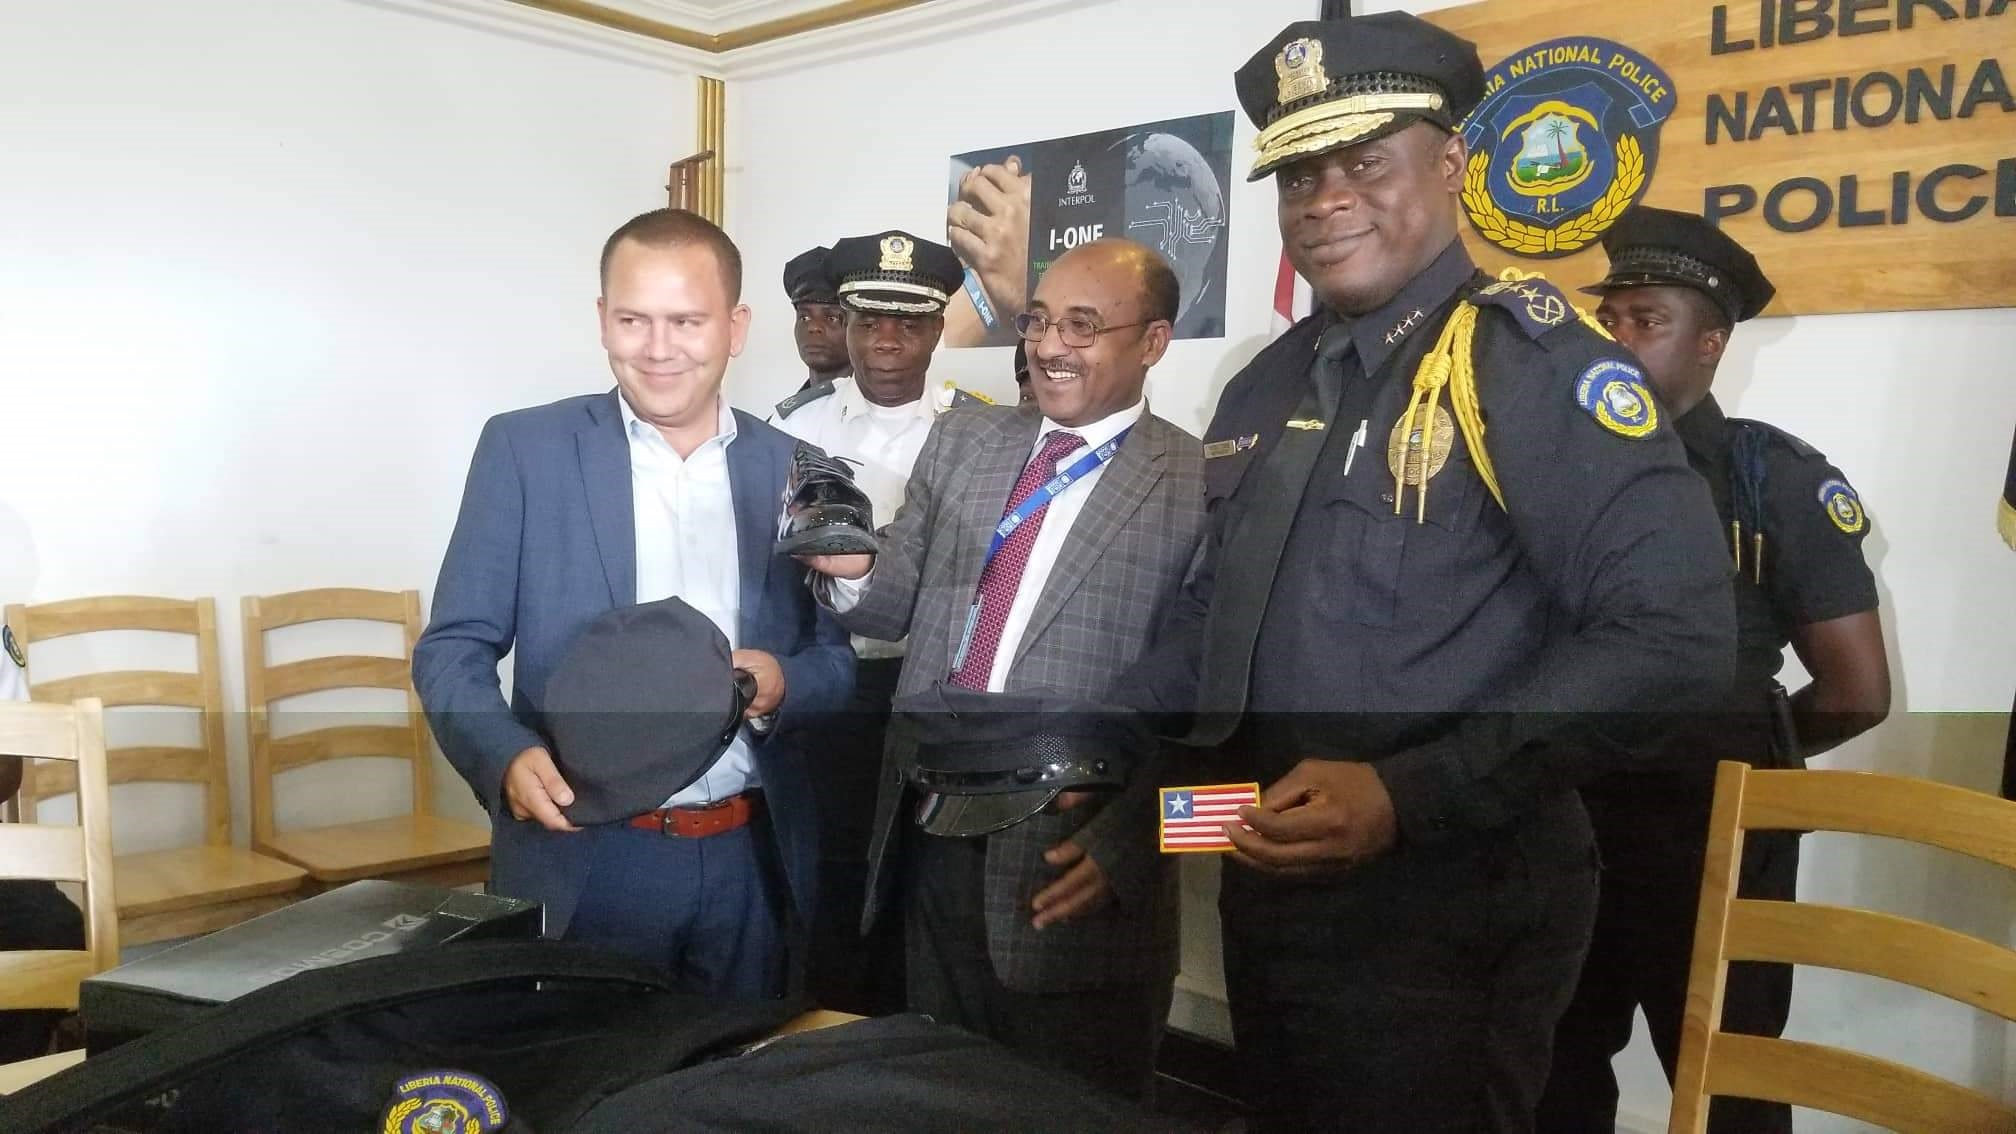 Sweden, Ireland and UNDP donate uniforms to Liberian Police